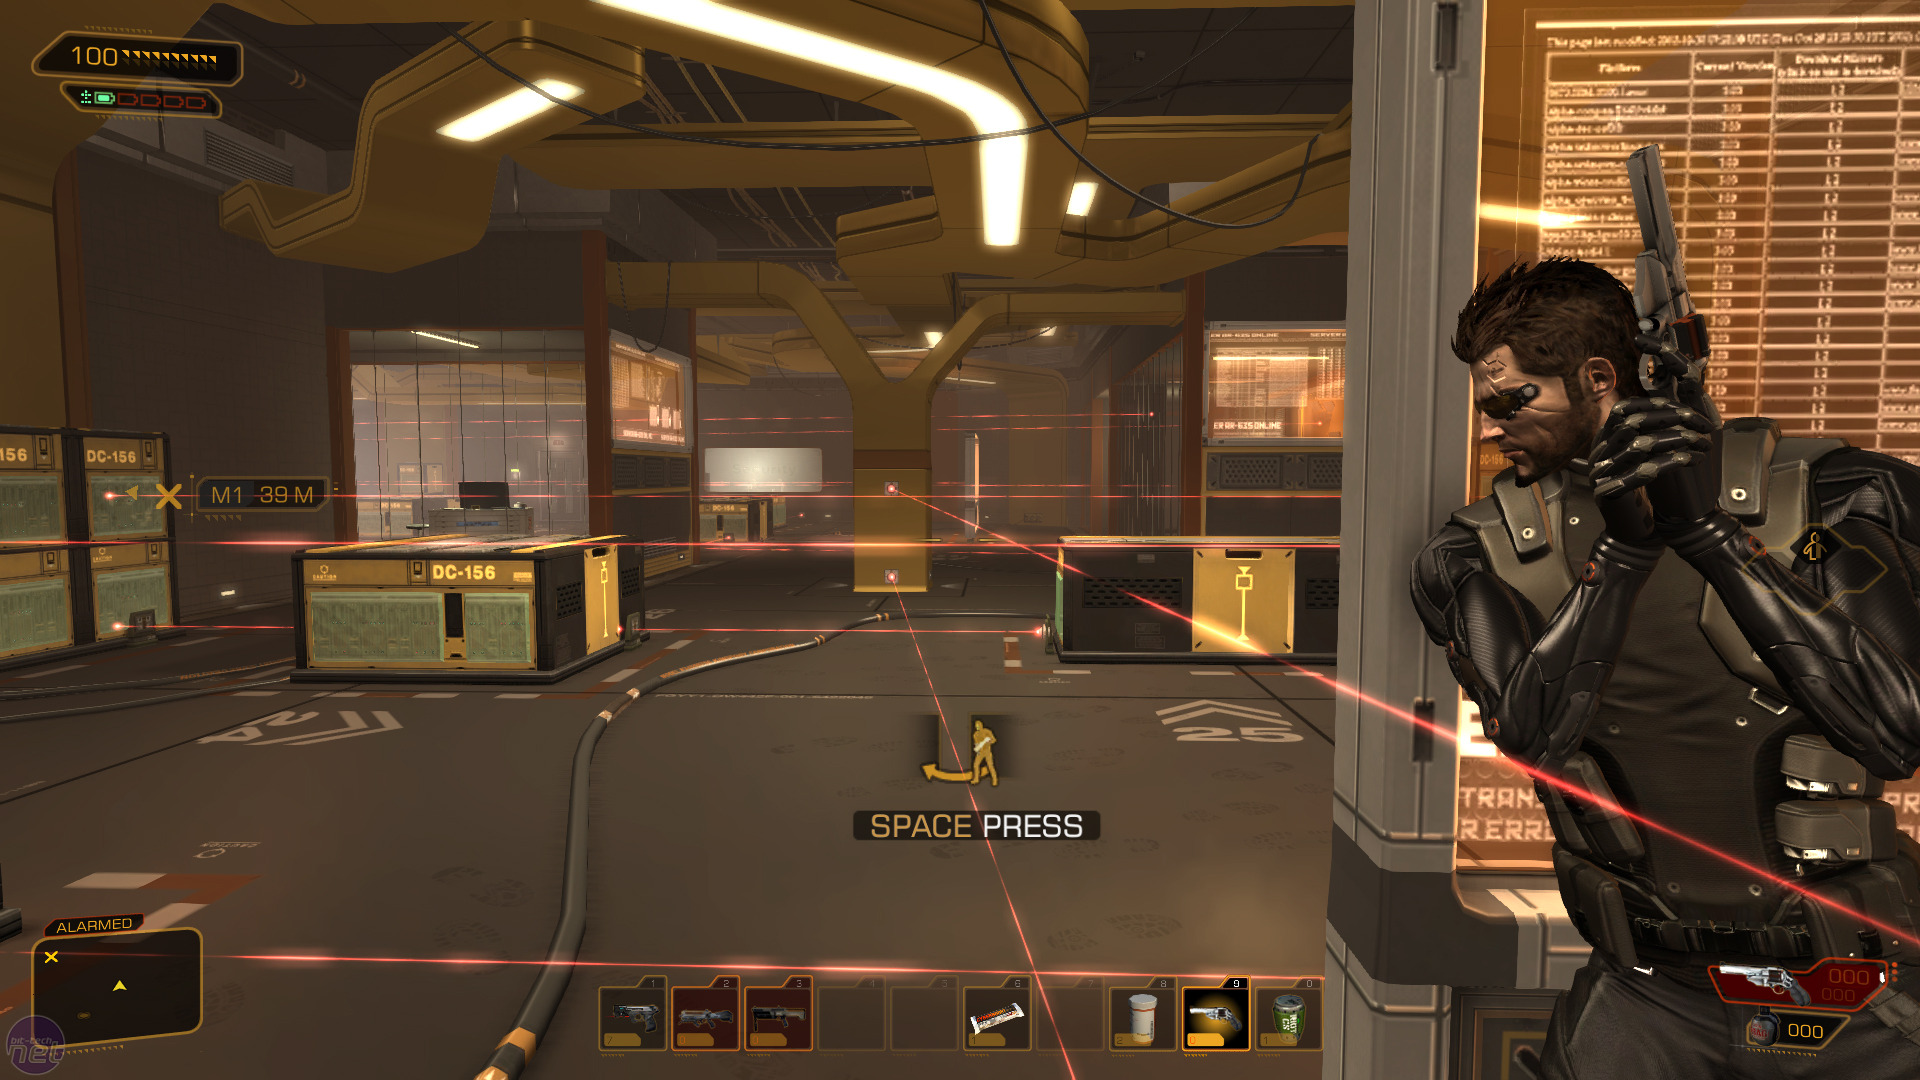 Deus ex human revolution free download on xbox 360 and ps3.